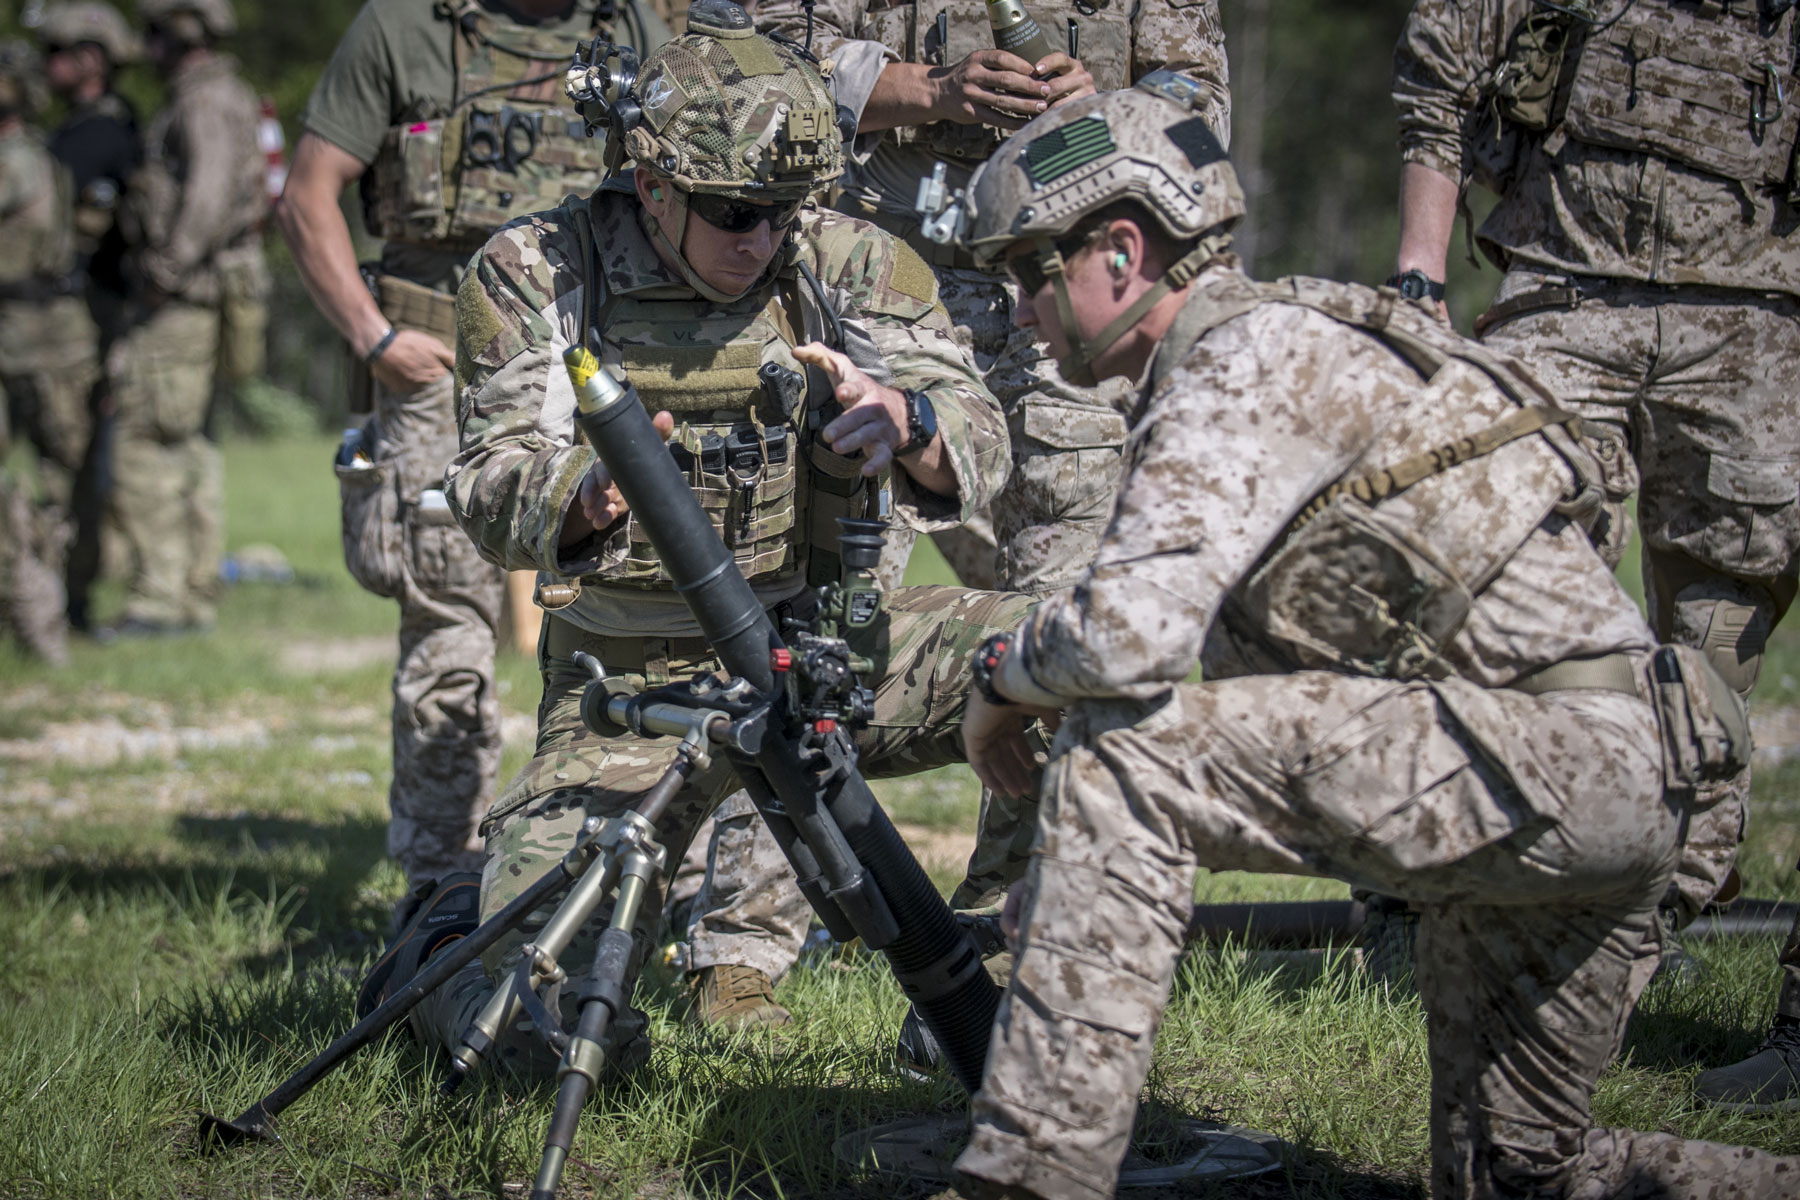 A partner force member drops an M888 mortar round into a M224 60mm Mortar during indirect-fire training.